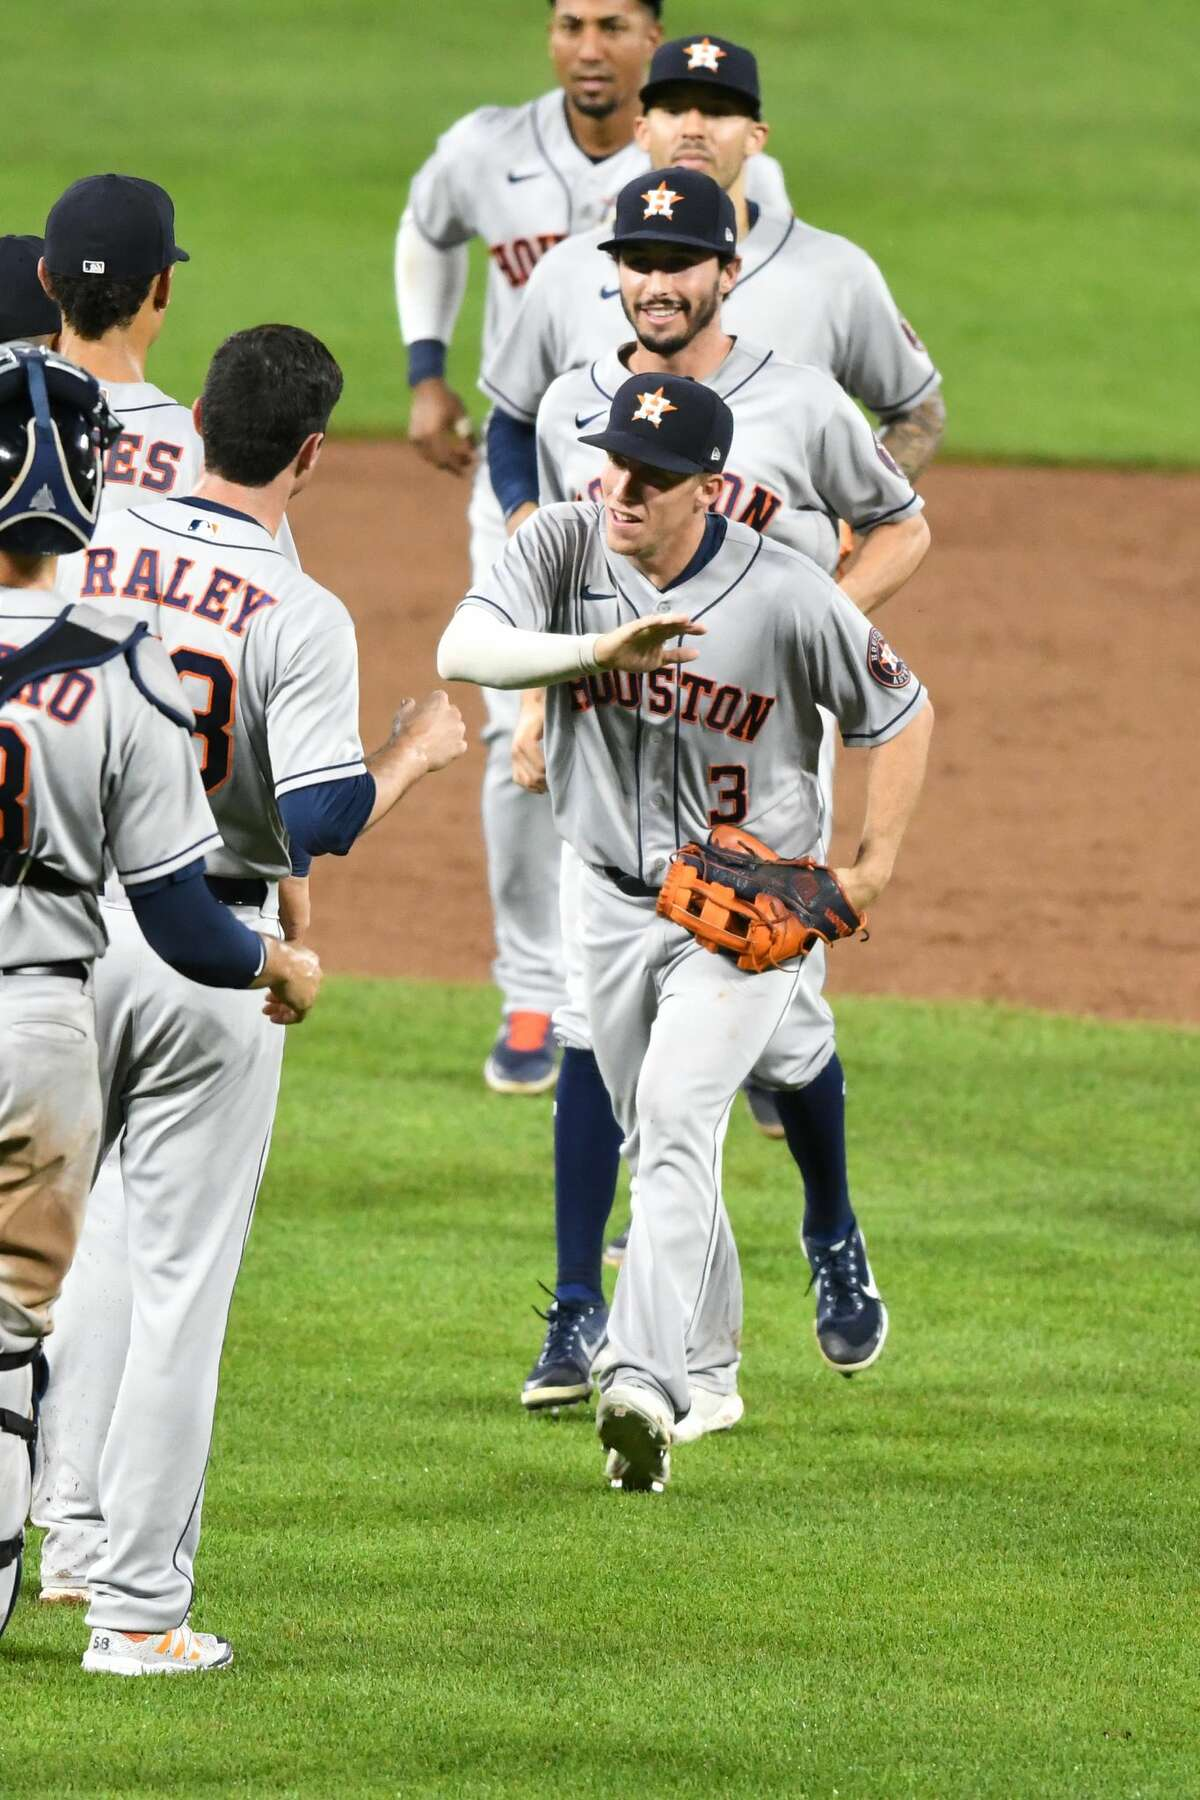 BALTIMORE, MD - JUNE 21: Myles Straw #3 of the Houston Astros celebrates a win with teammates after a baseball game against the Baltimore Orioles at Oriole Park at Camden Yards on June 21, 2021 in Baltimore, Maryland. (Photo by Mitchell Layton/Getty Images)